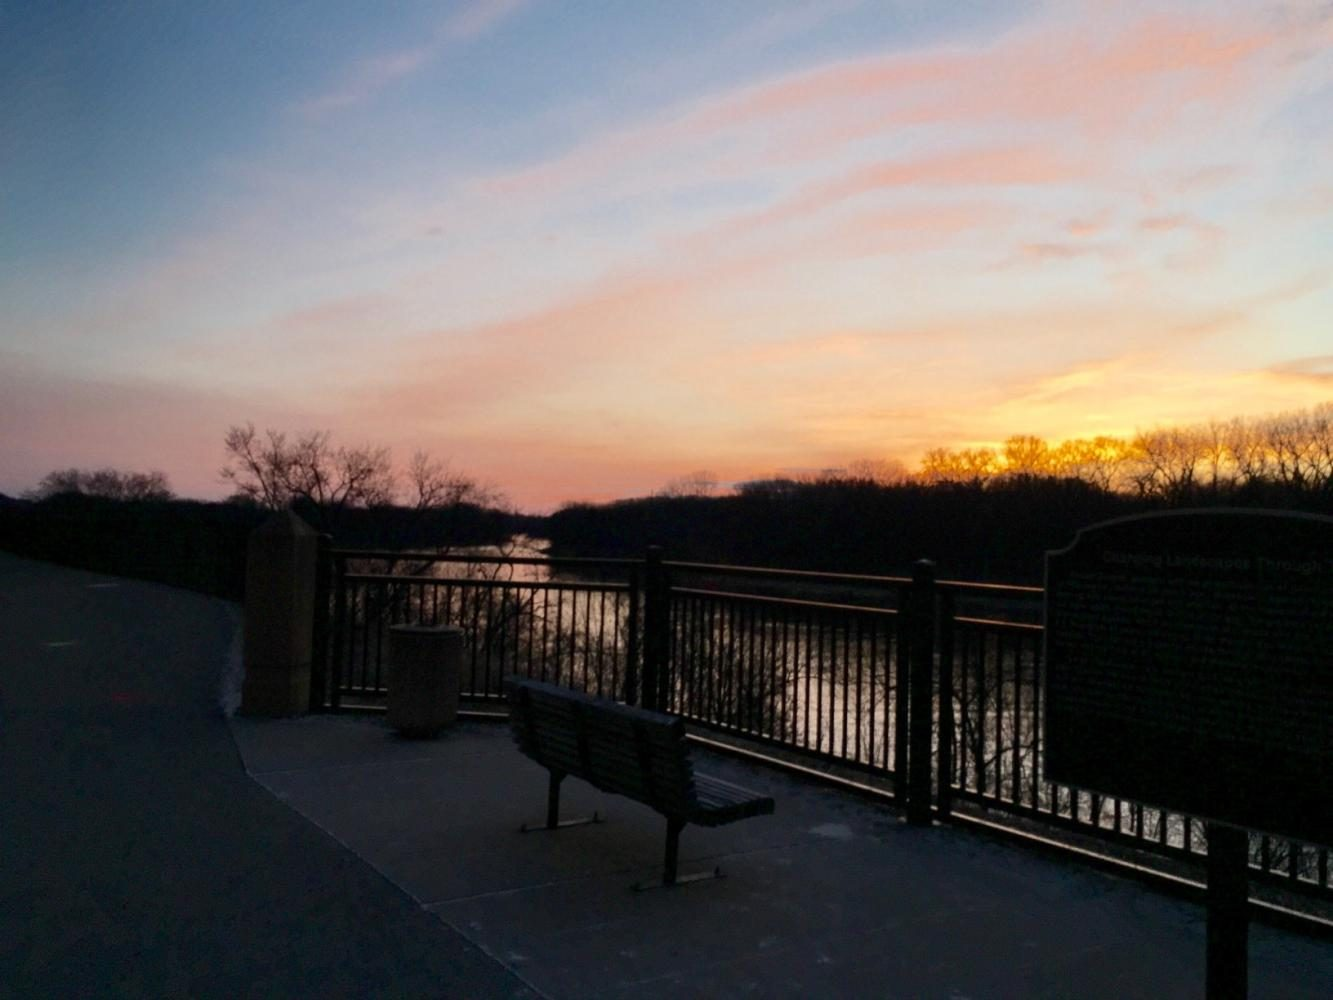 Outdoor paths near the Mississippi River are great places to exercise and enjoy spring weather.